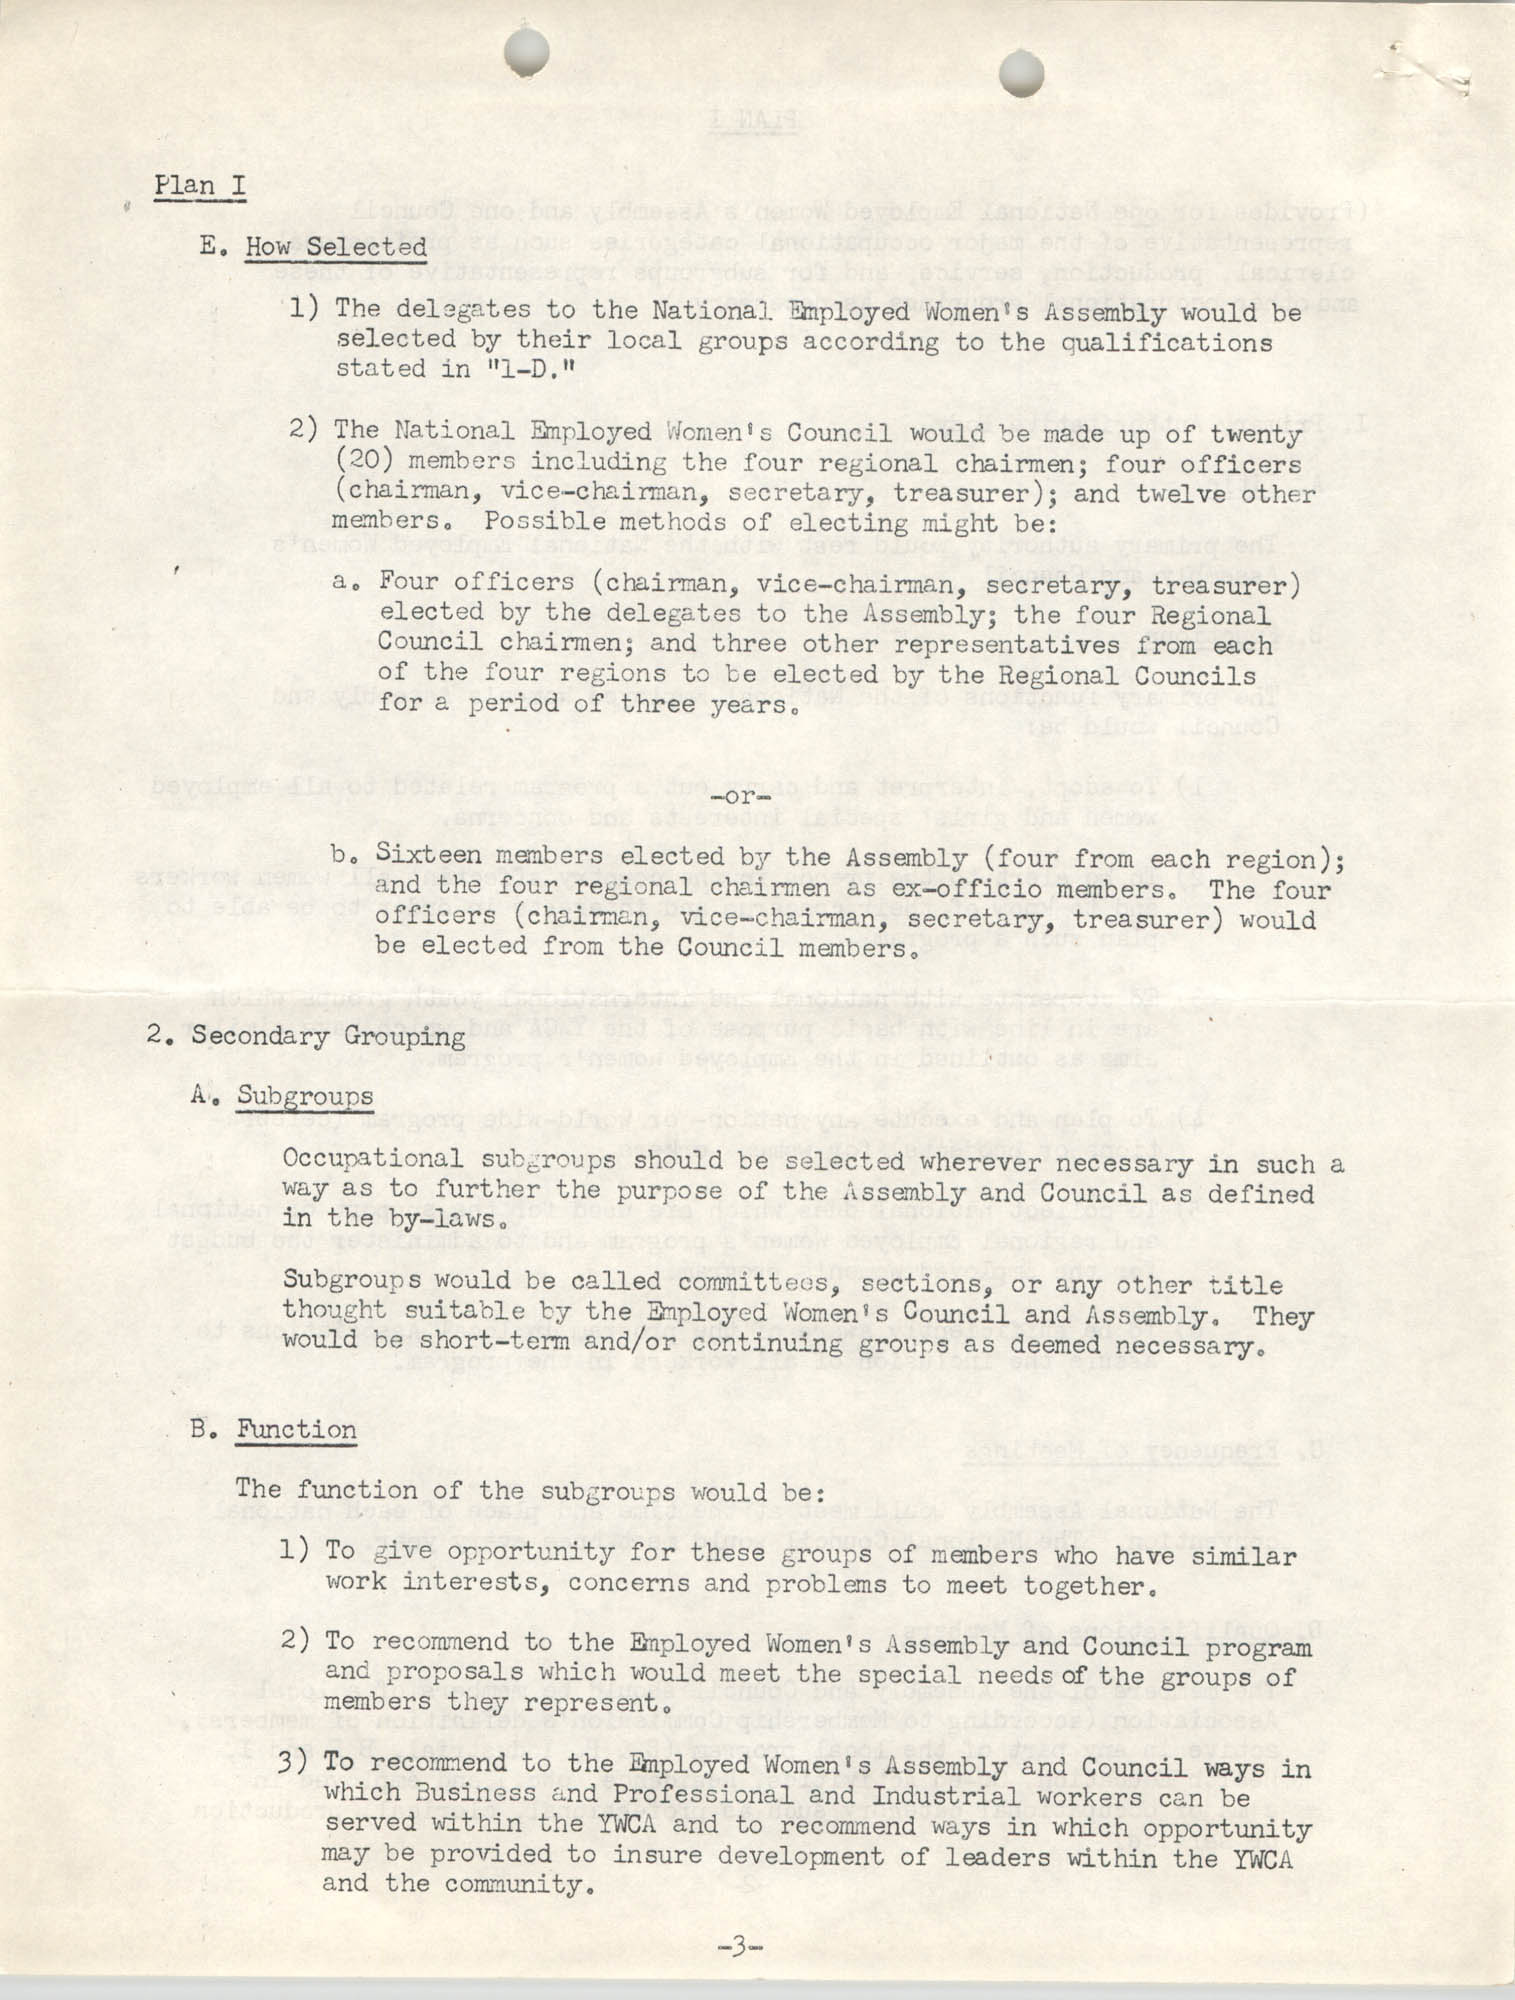 Division of Community Y.W.C.A.'s Committee Report, Plan I, Page 3